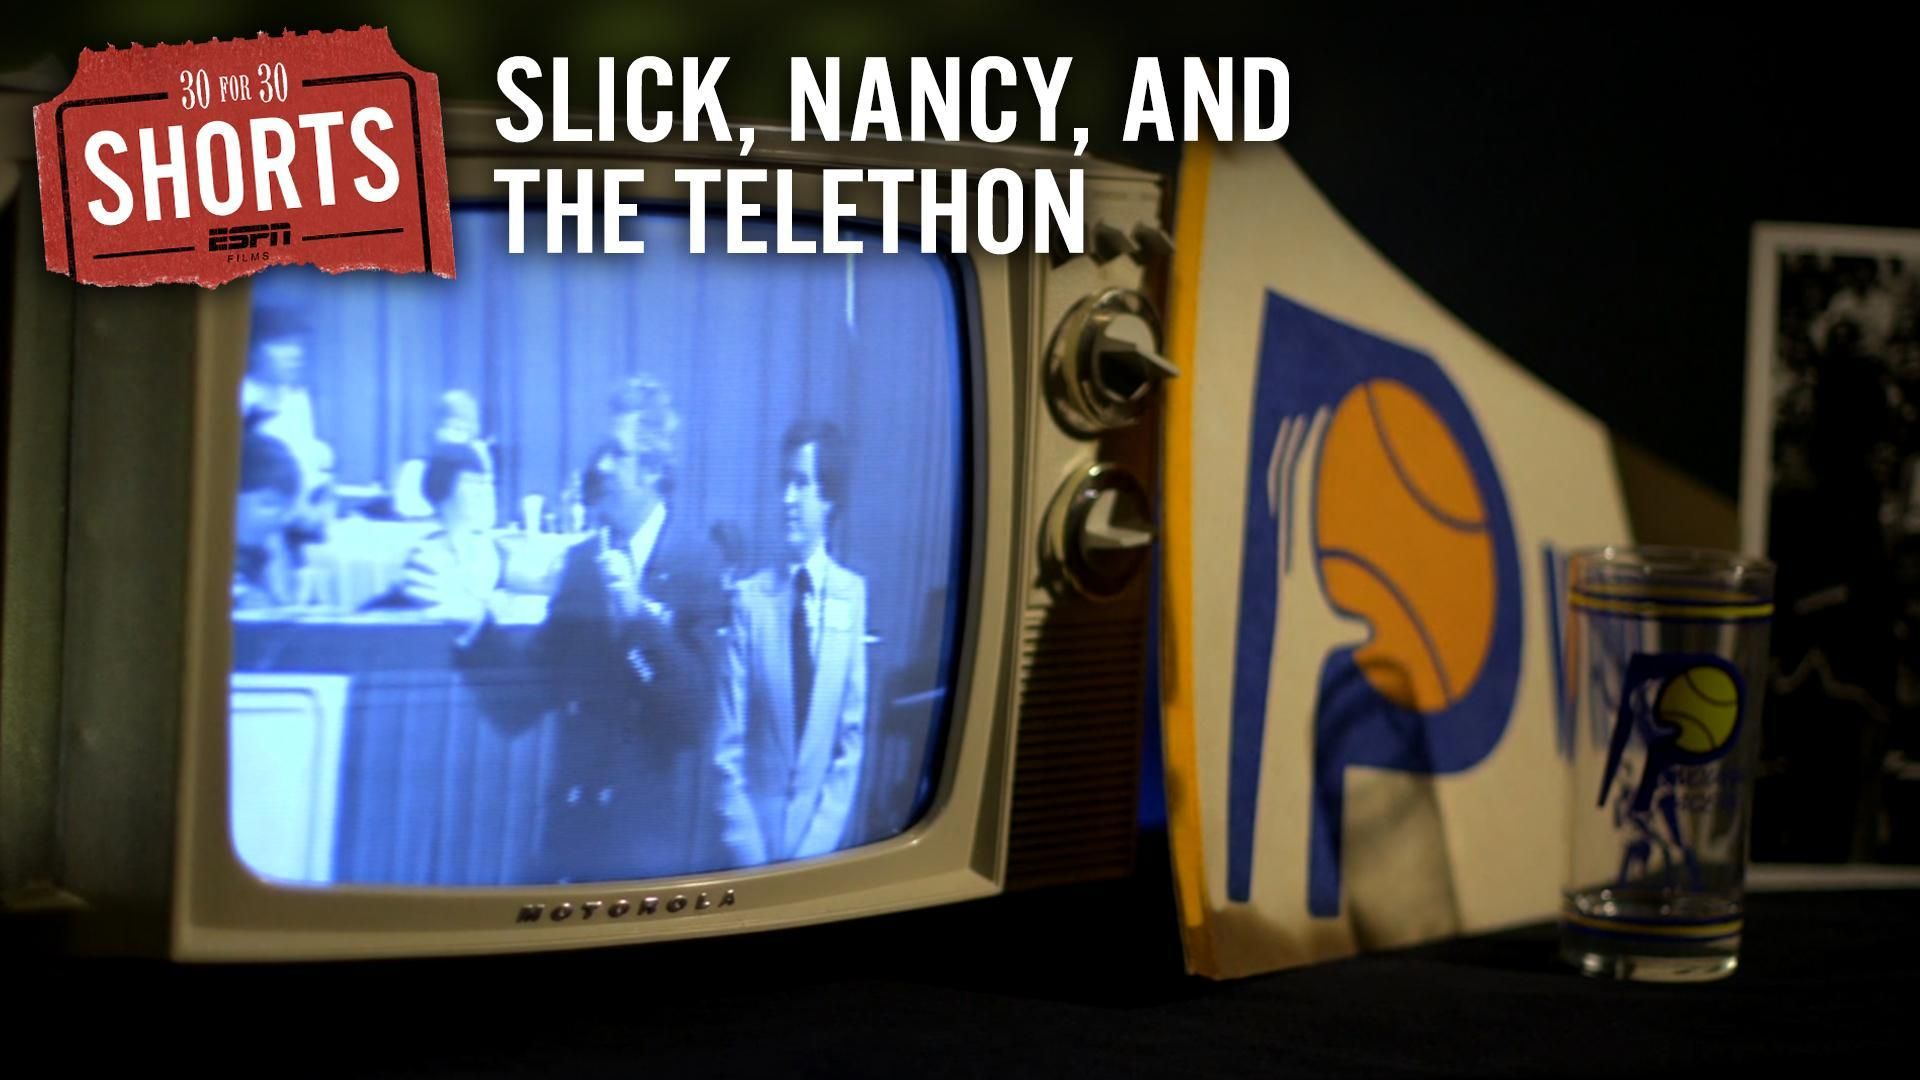 30 for 30 Shorts: Slick, Nancy, and the Telethon